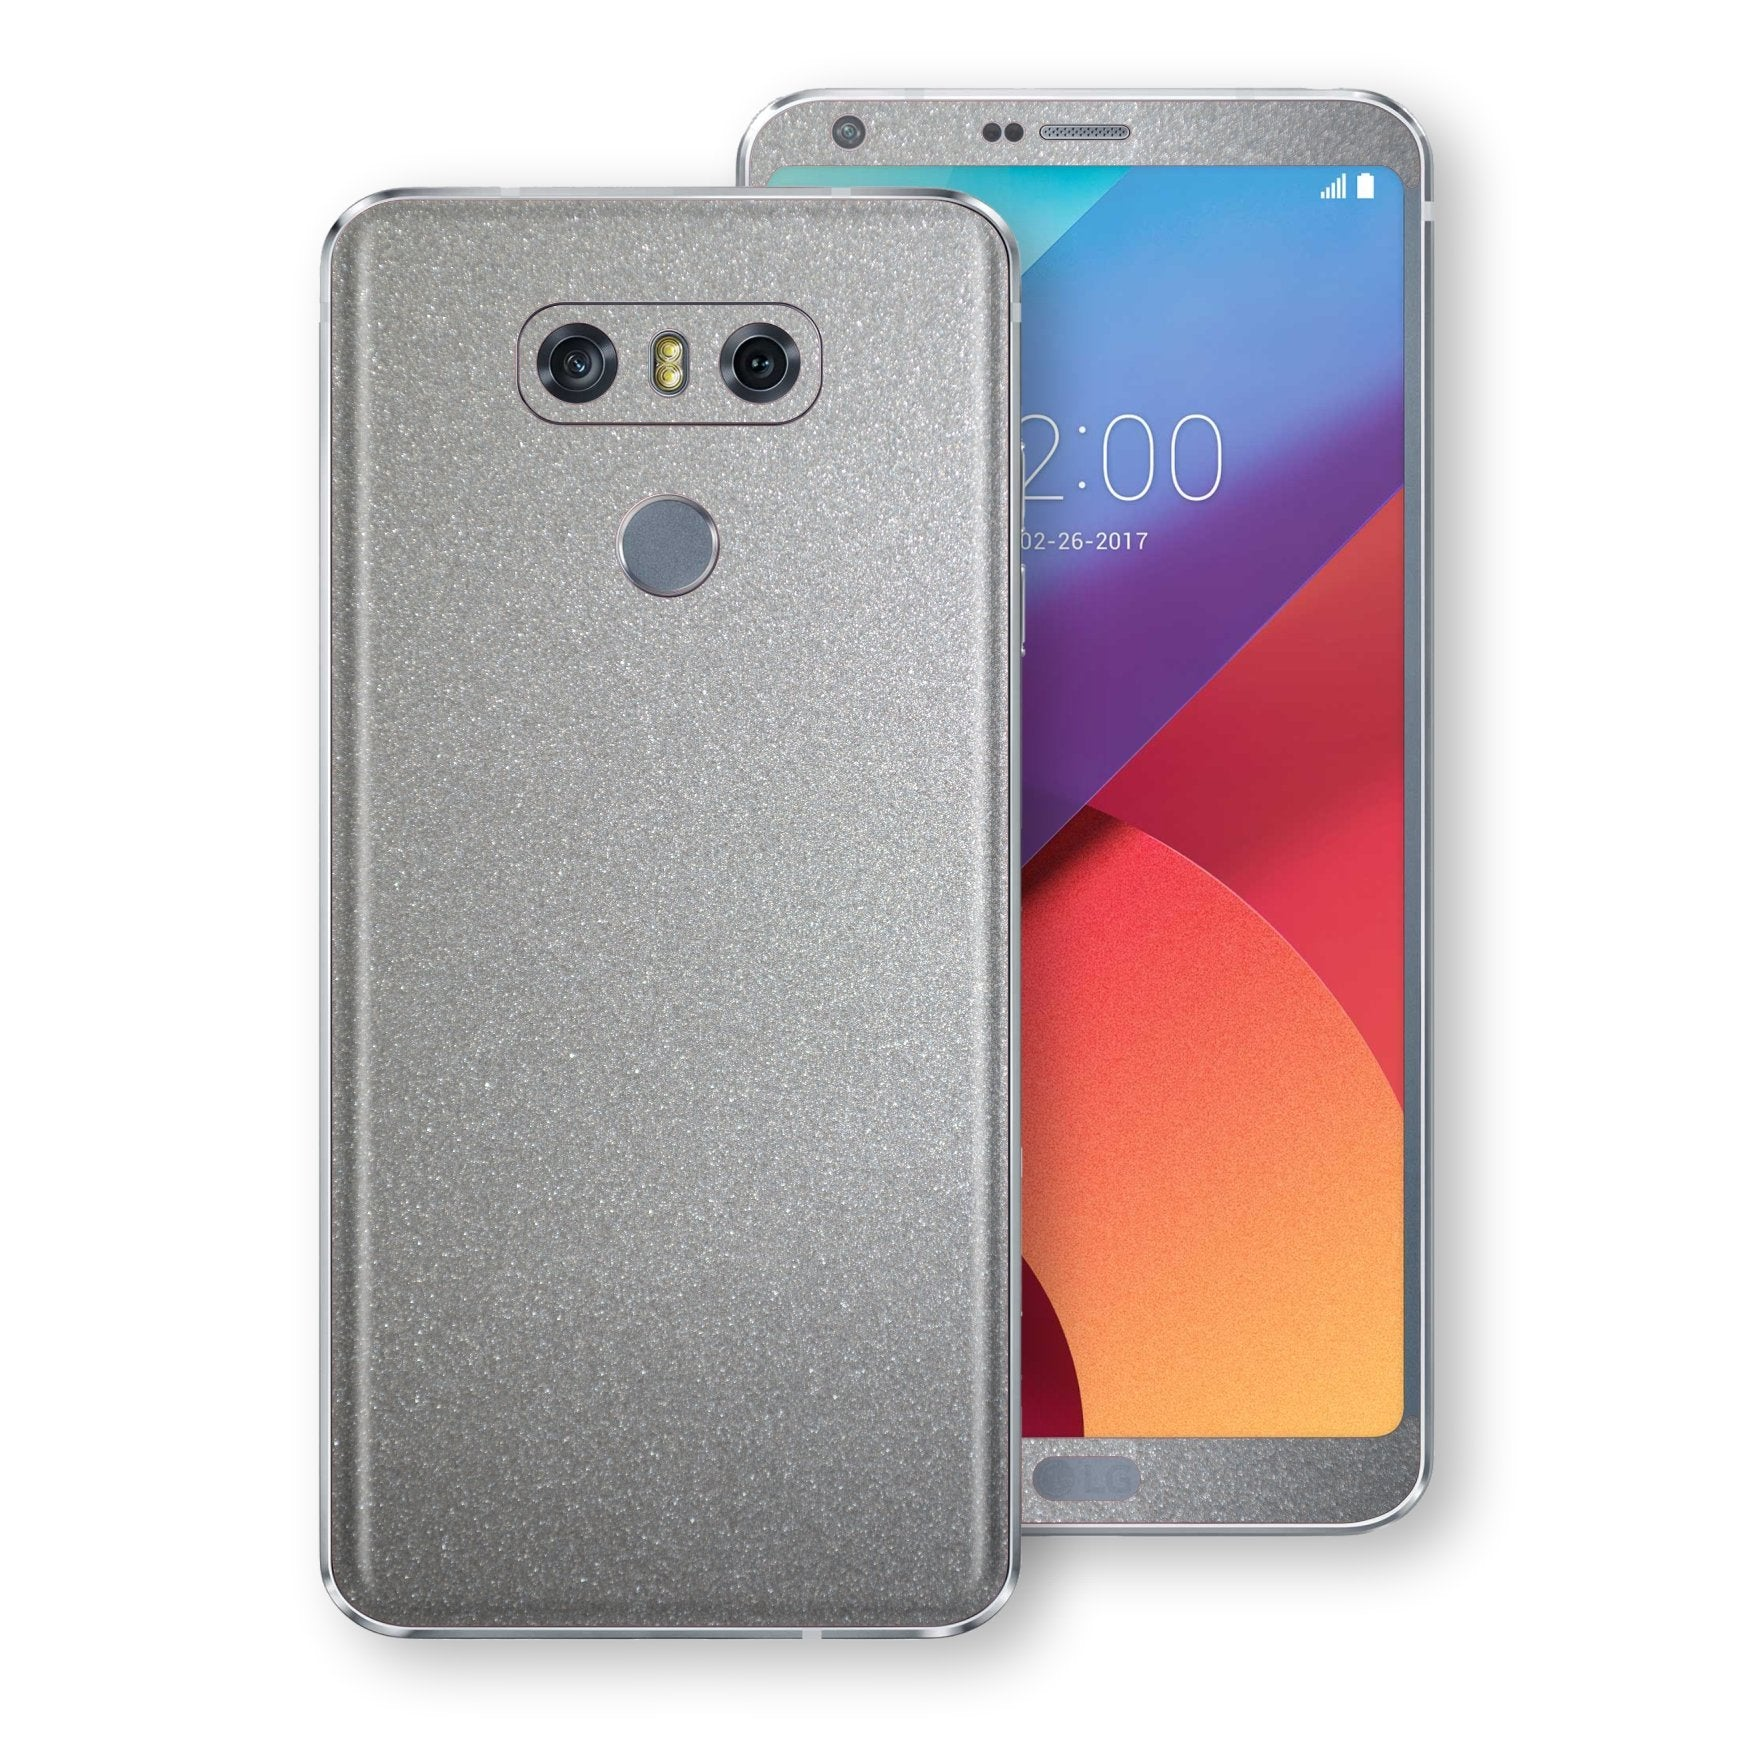 LG G6 Silver Glossy Metallic Skin, Decal, Wrap, Protector, Cover by EasySkinz | EasySkinz.com